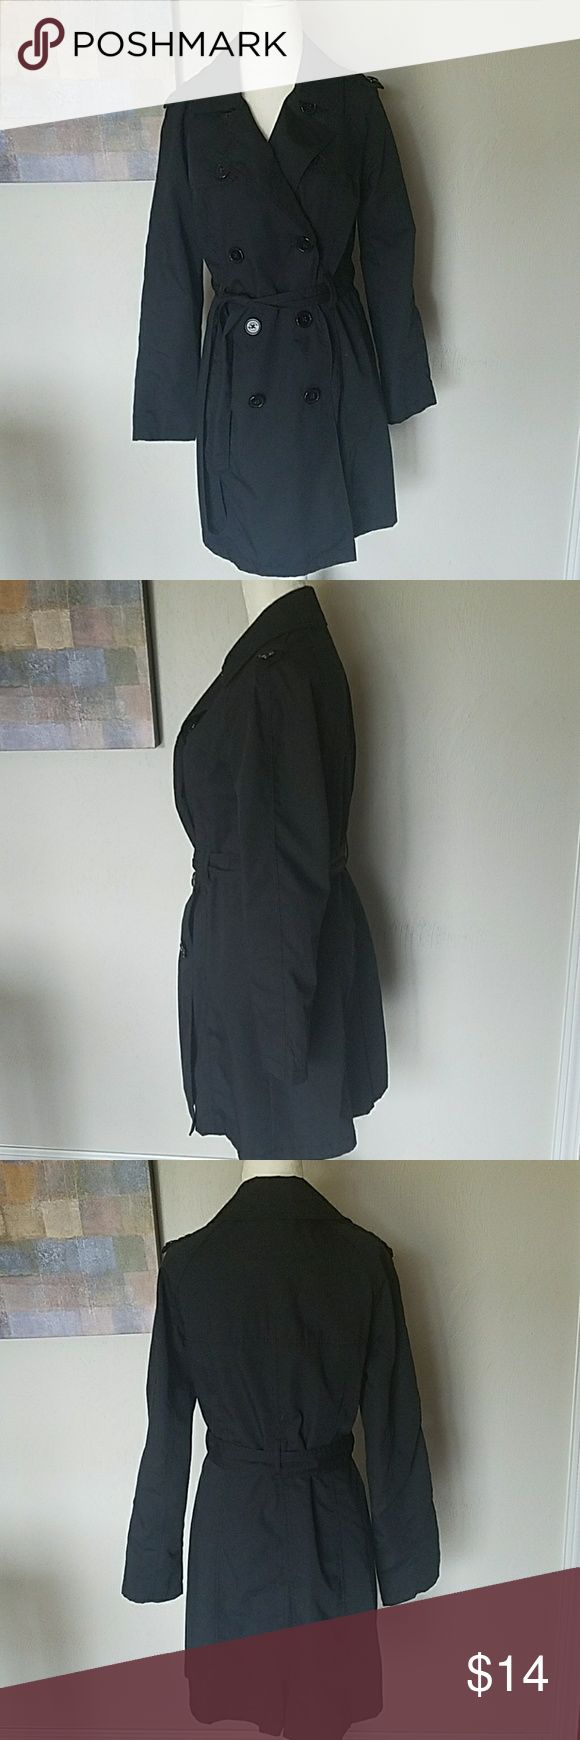 Black Trench Coat Merona black trench coat size small.   This jacket is lightweight and as water repellent! Merona Jackets & Coats Trench Coats